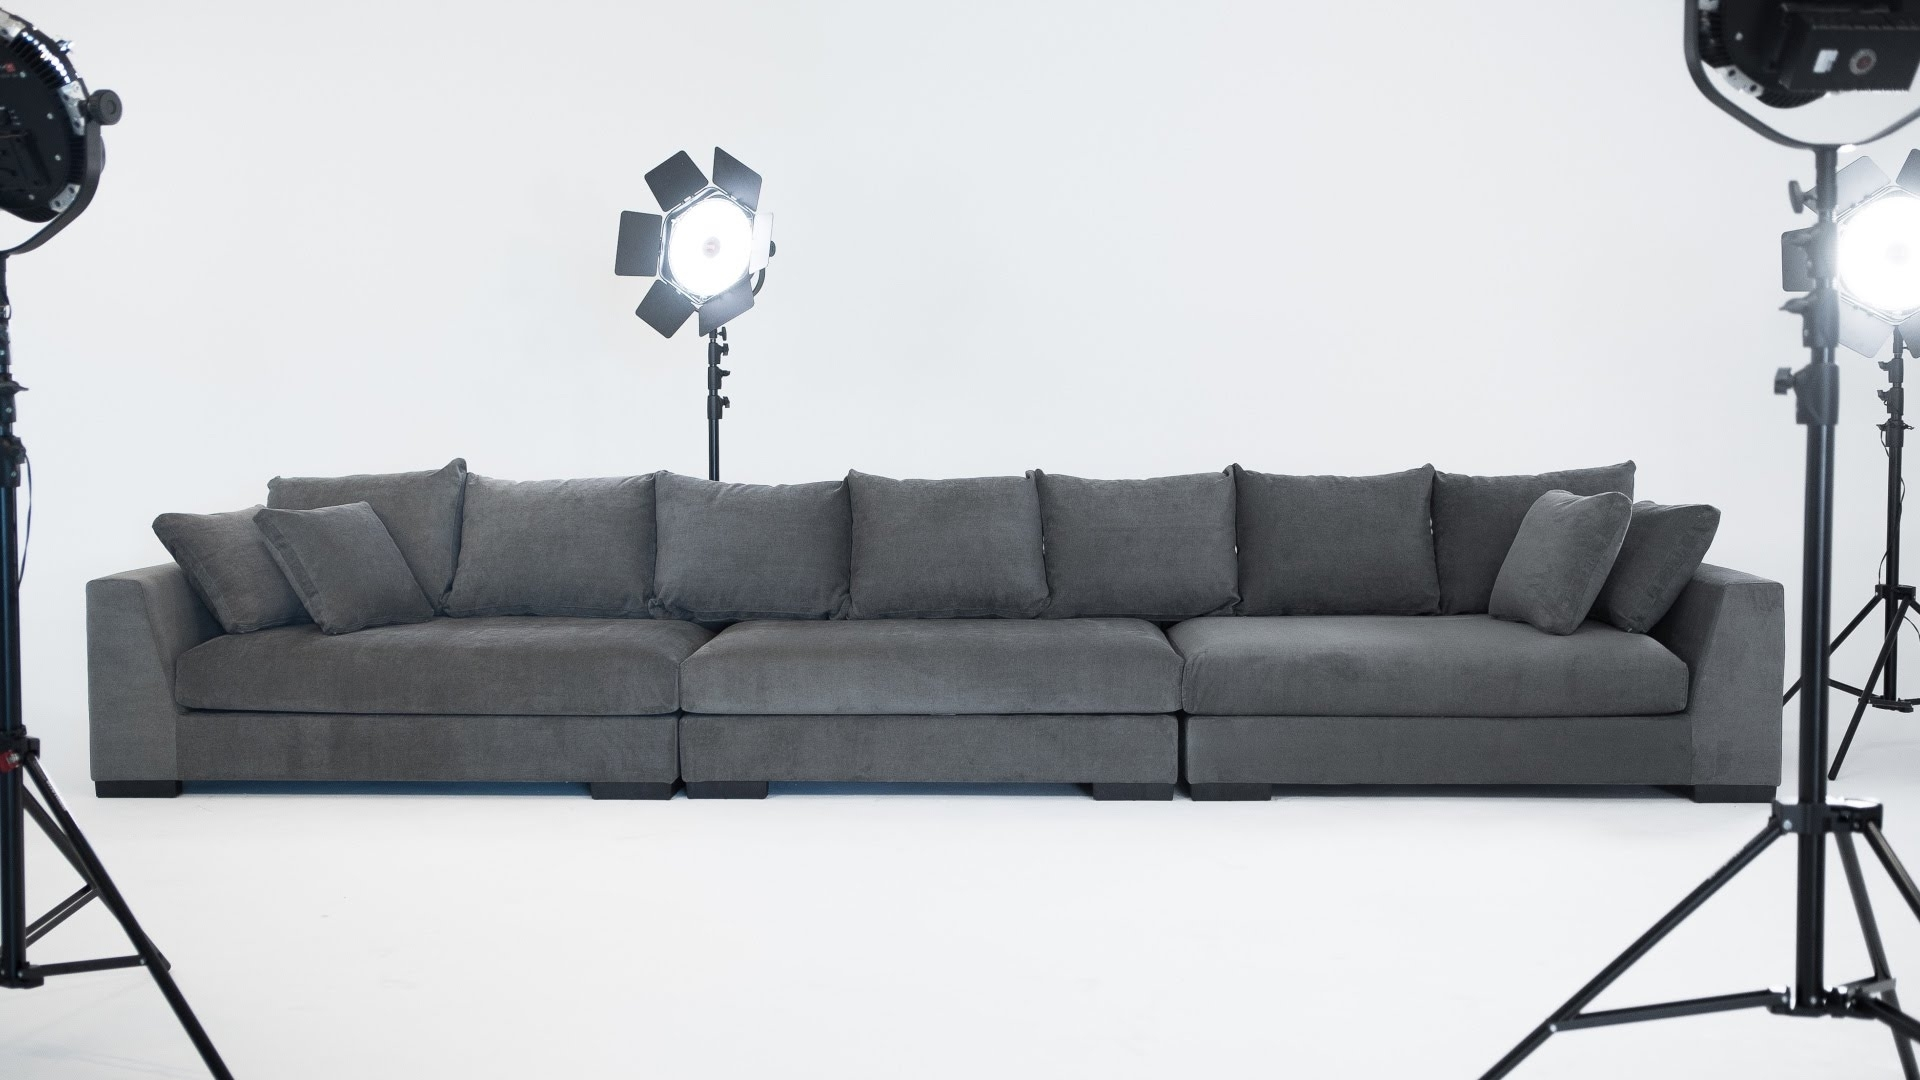 Structube Sectional Sofas Regarding Widely Used The Cooper Sectional Sofa – Structube – Youtube (View 3 of 15)